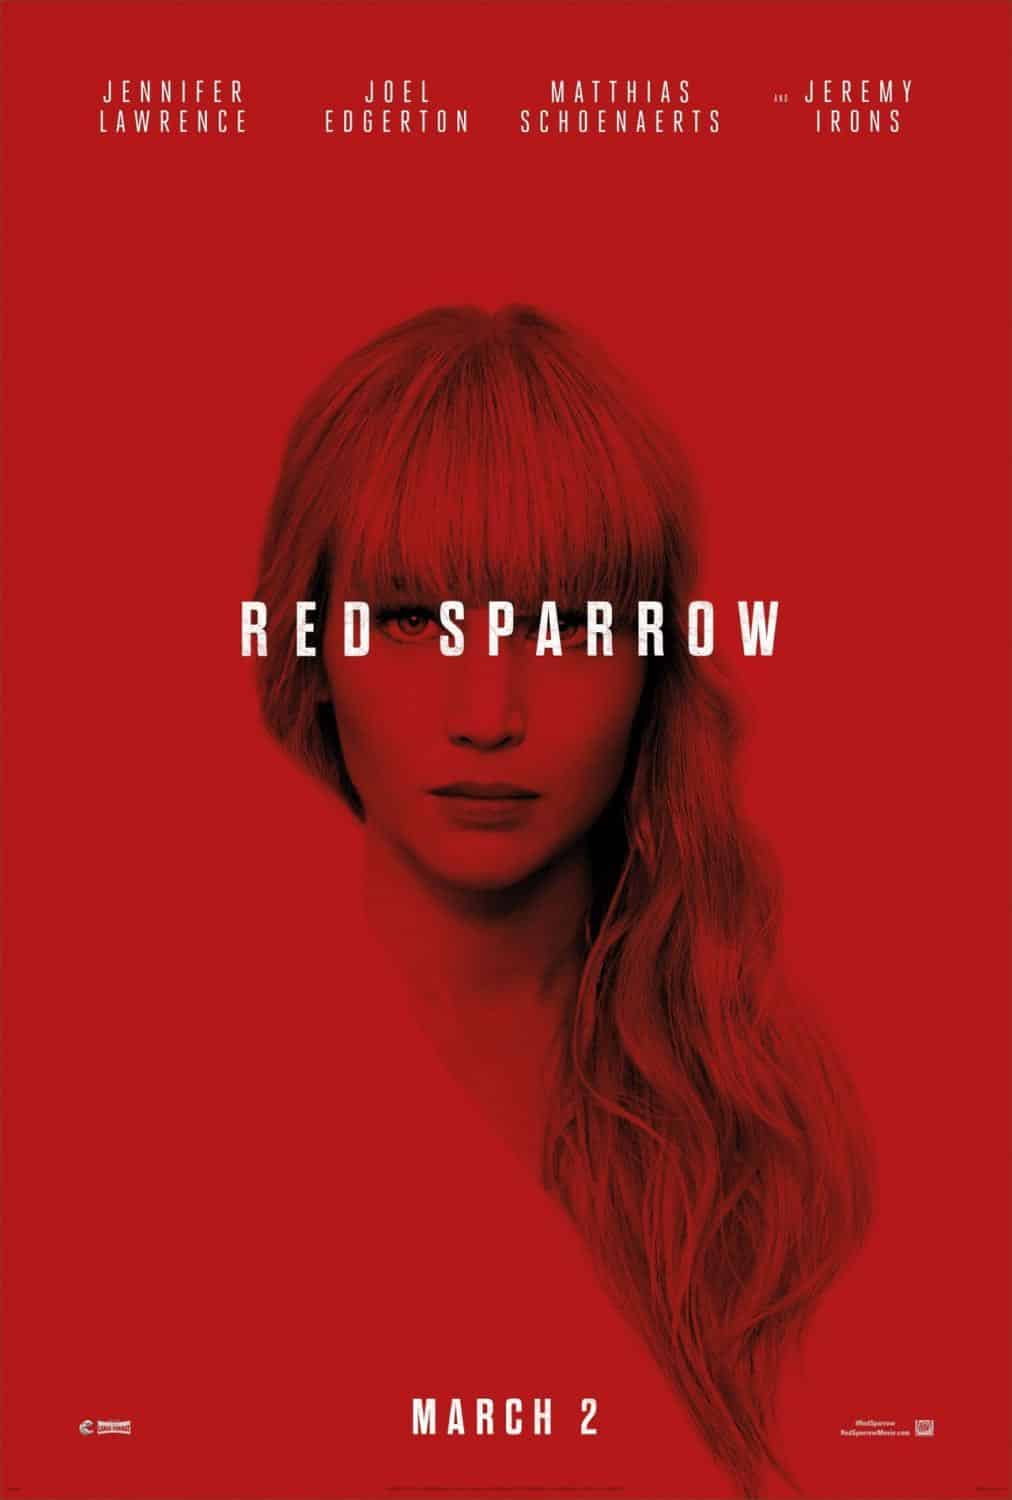 Red-Sparrow-Poster-Jennifer-Lawrence